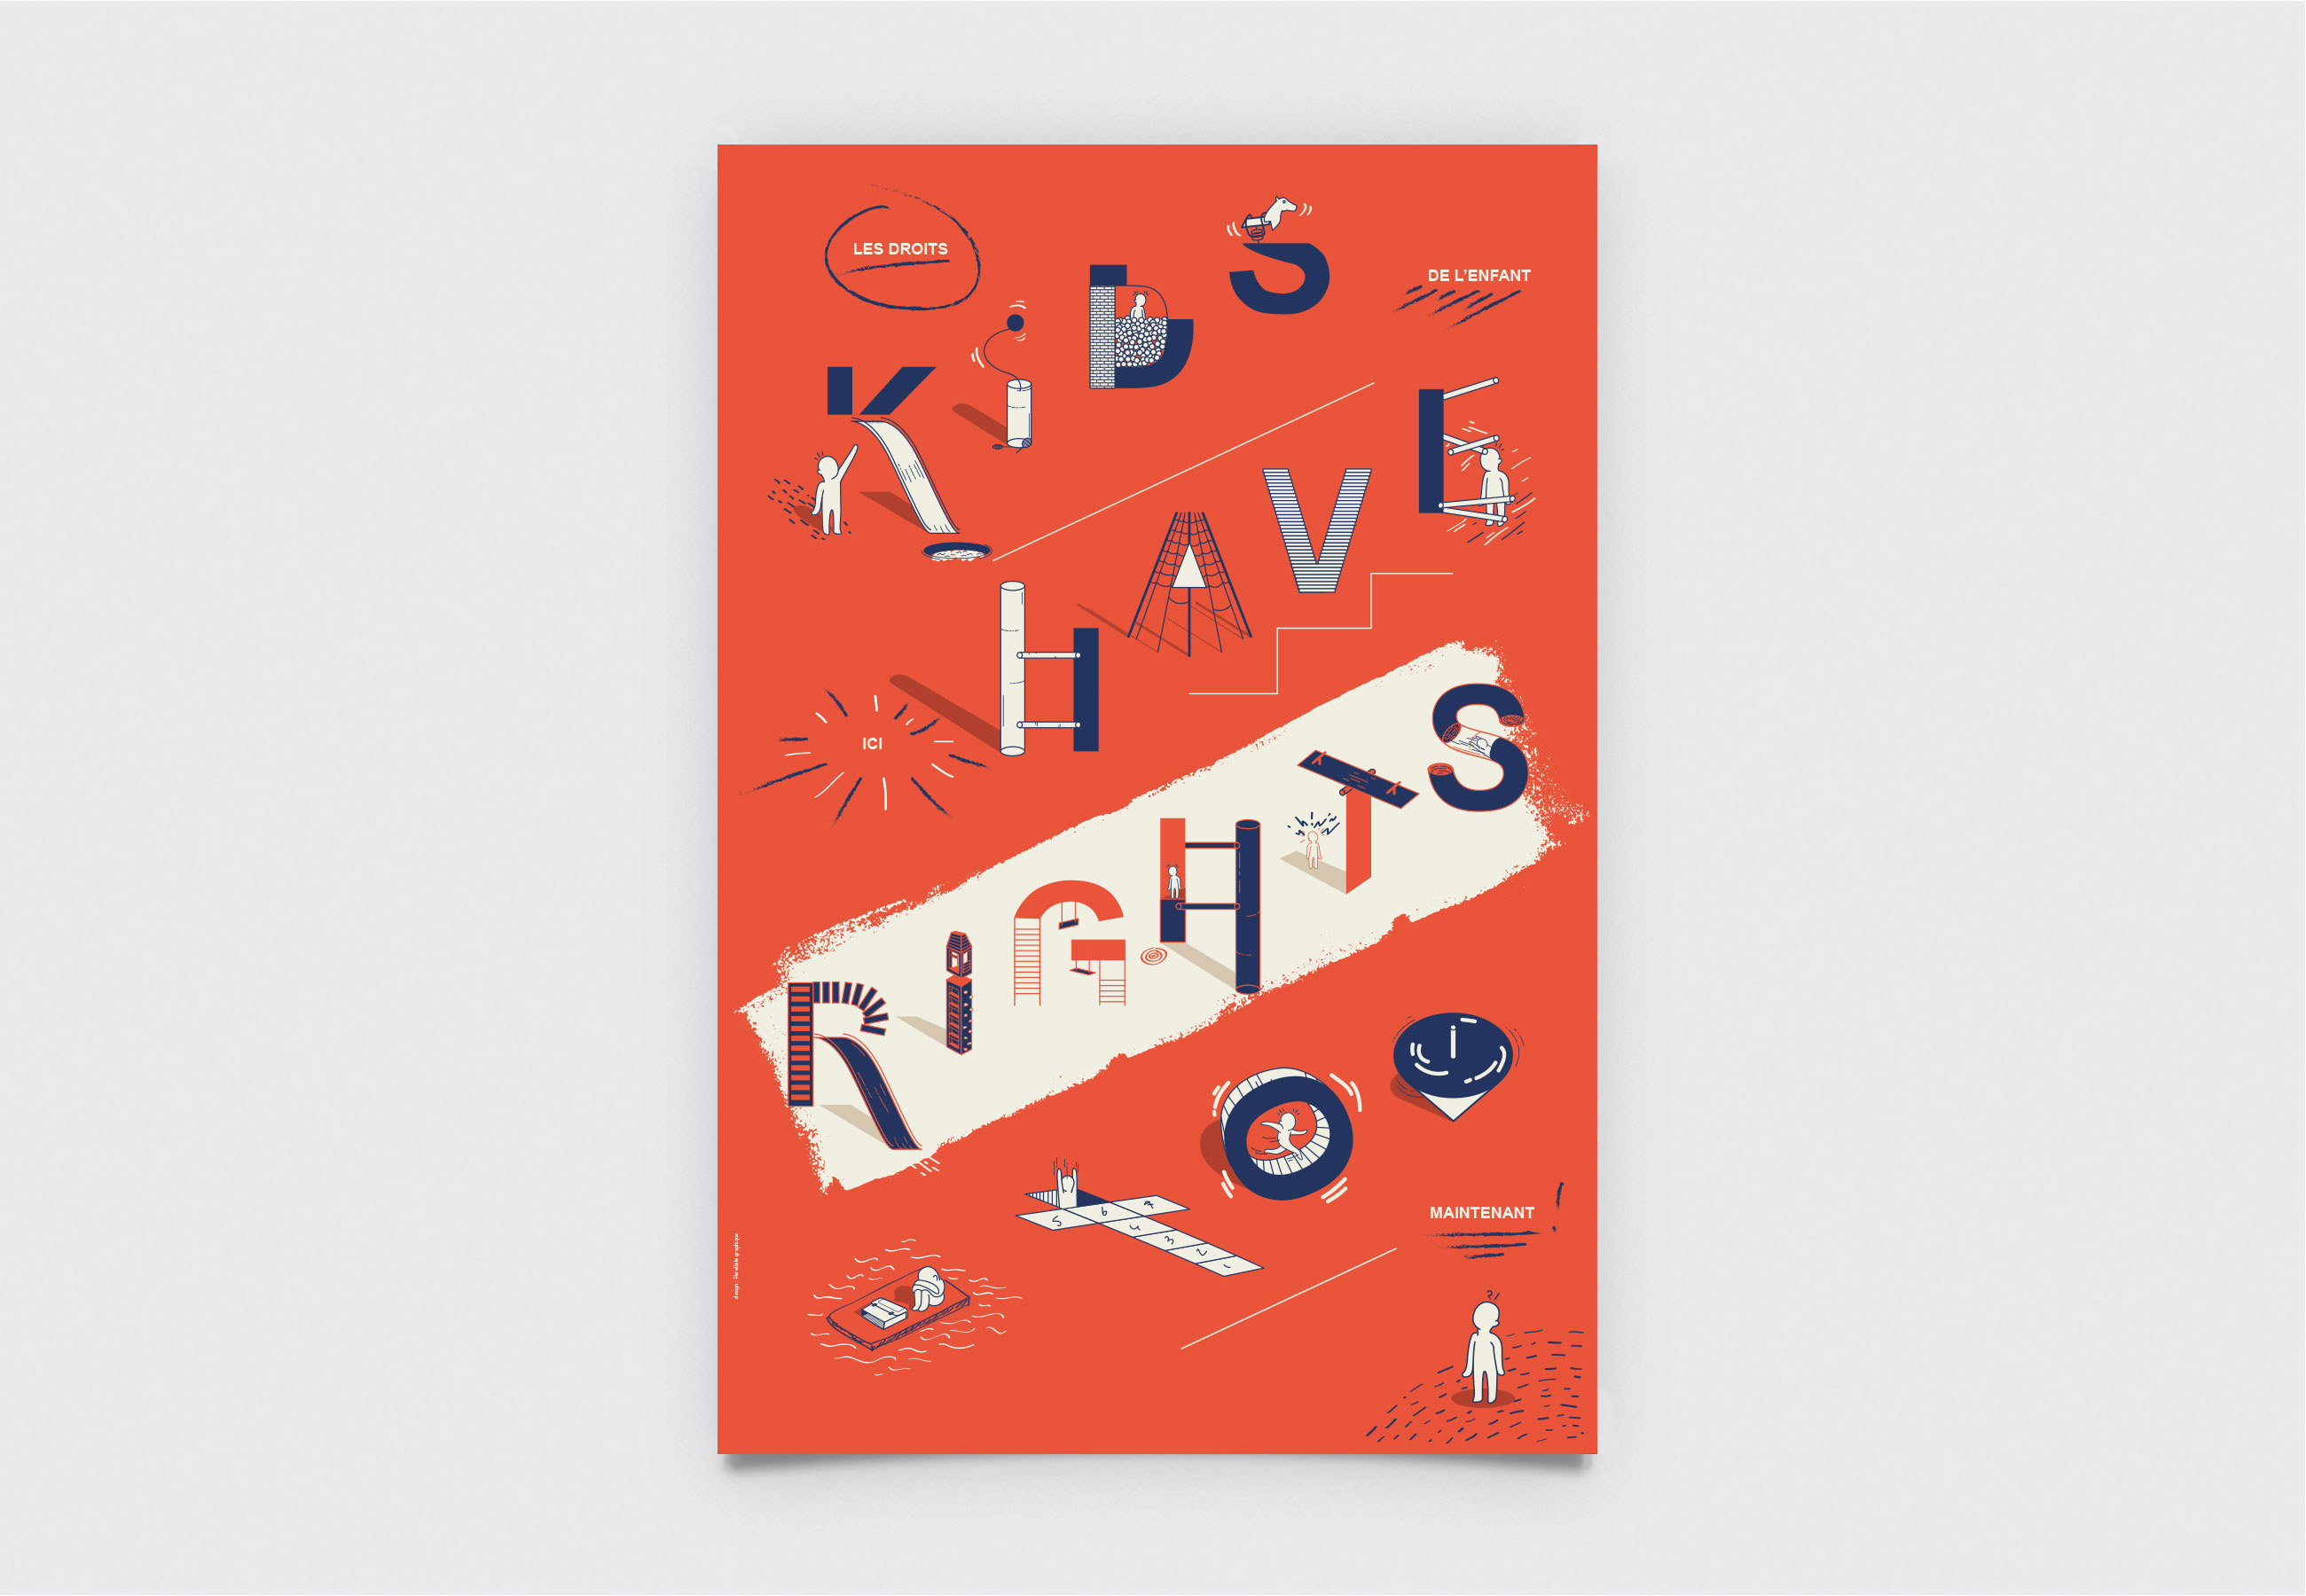 kids_have_rights_01_parallele_graphique